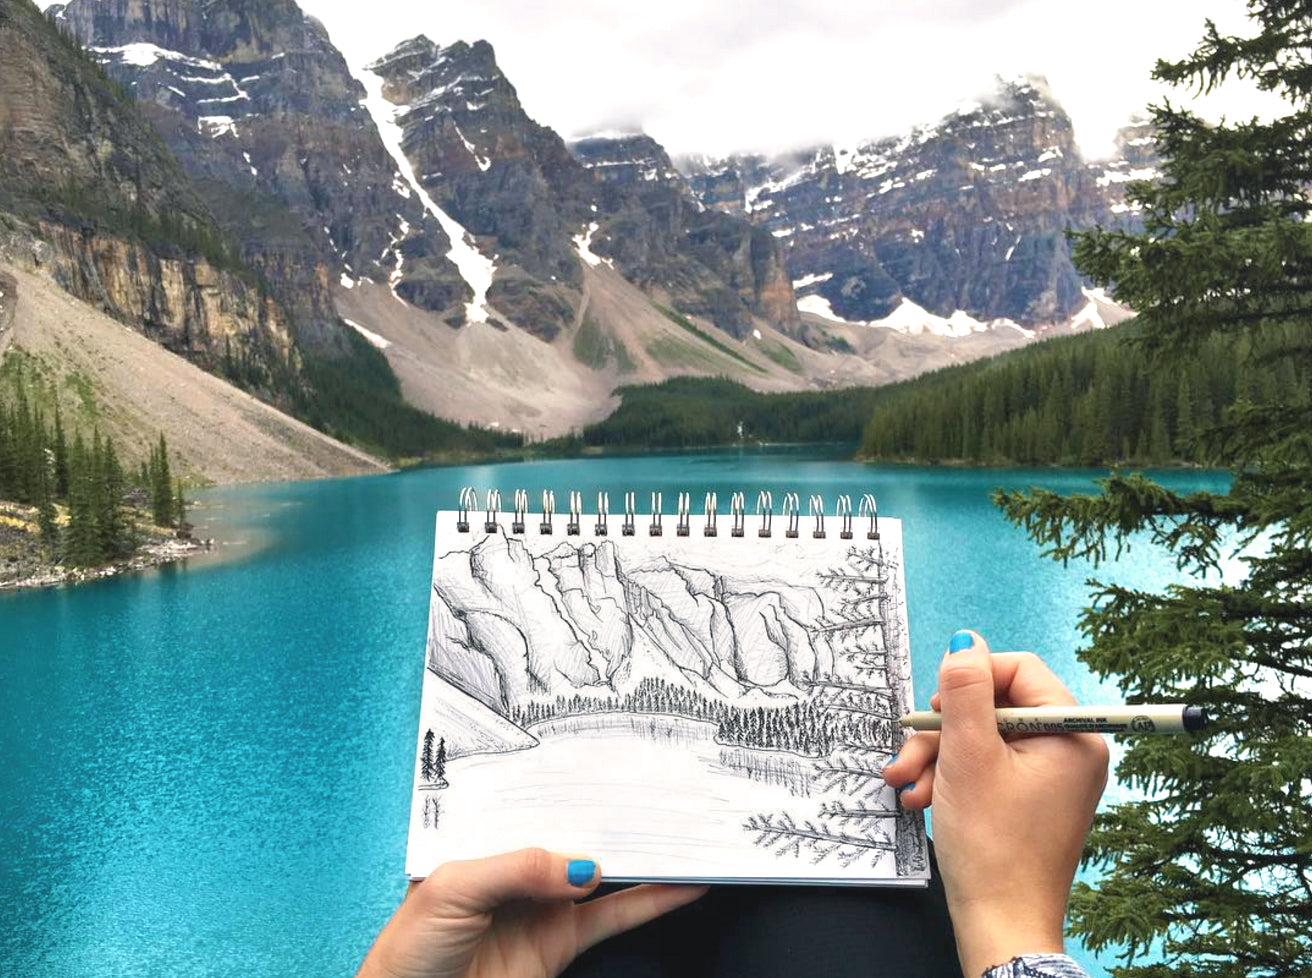 Lisa Kowieski | Drawing at Moraine Lake | Parks Project